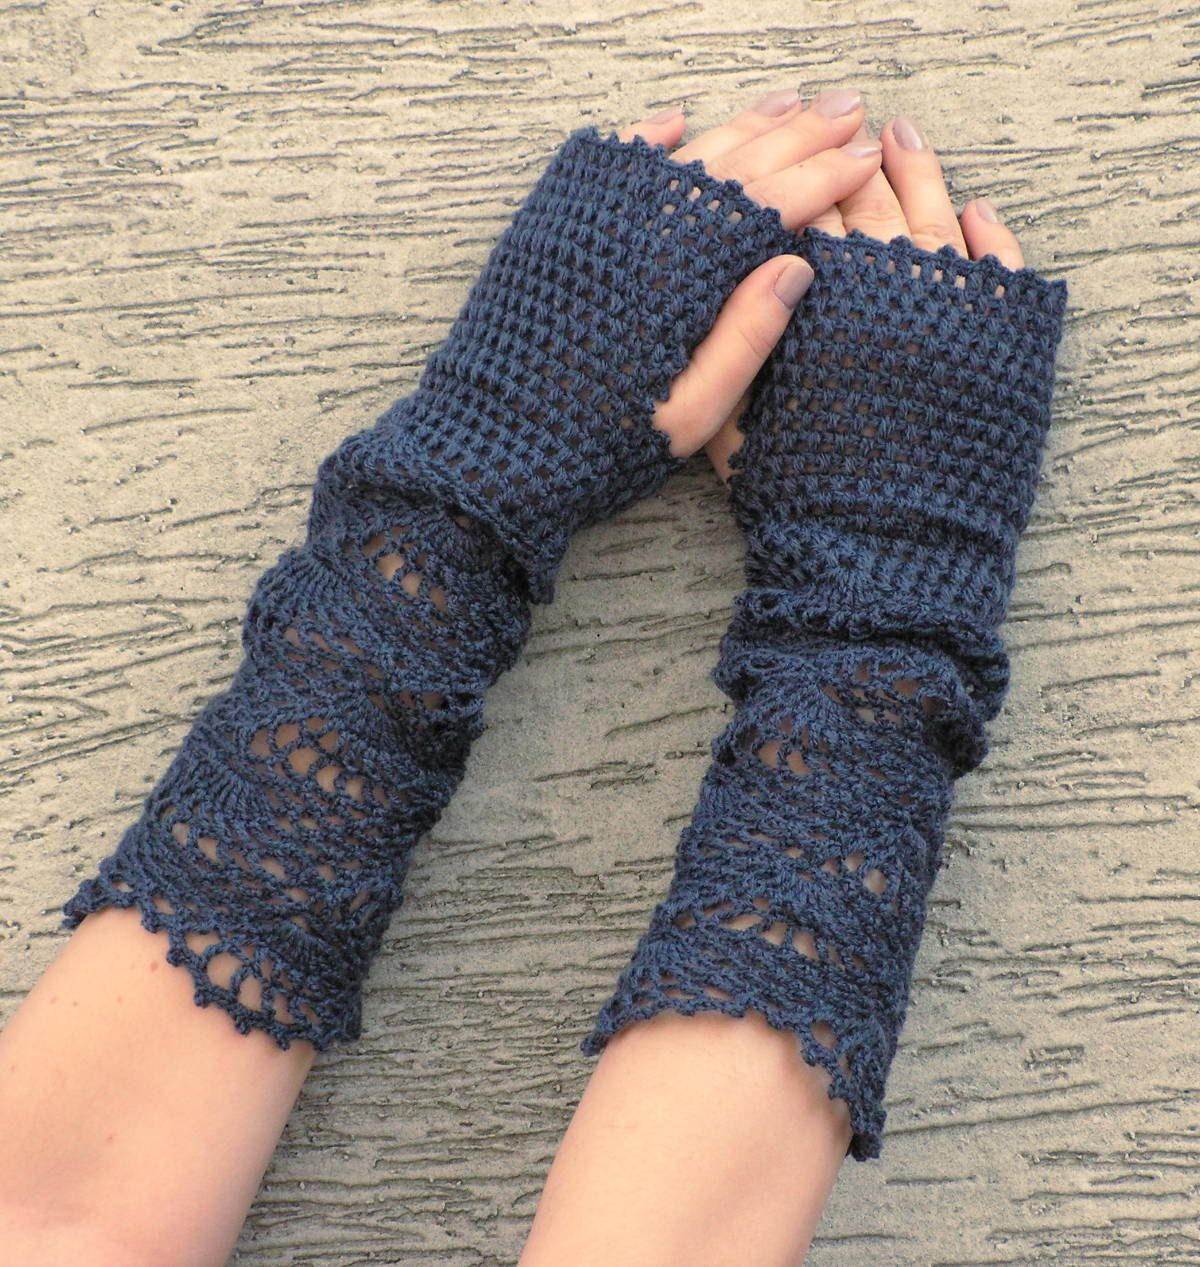 delicate crochet gloves are just beautiful | The Project Page ...